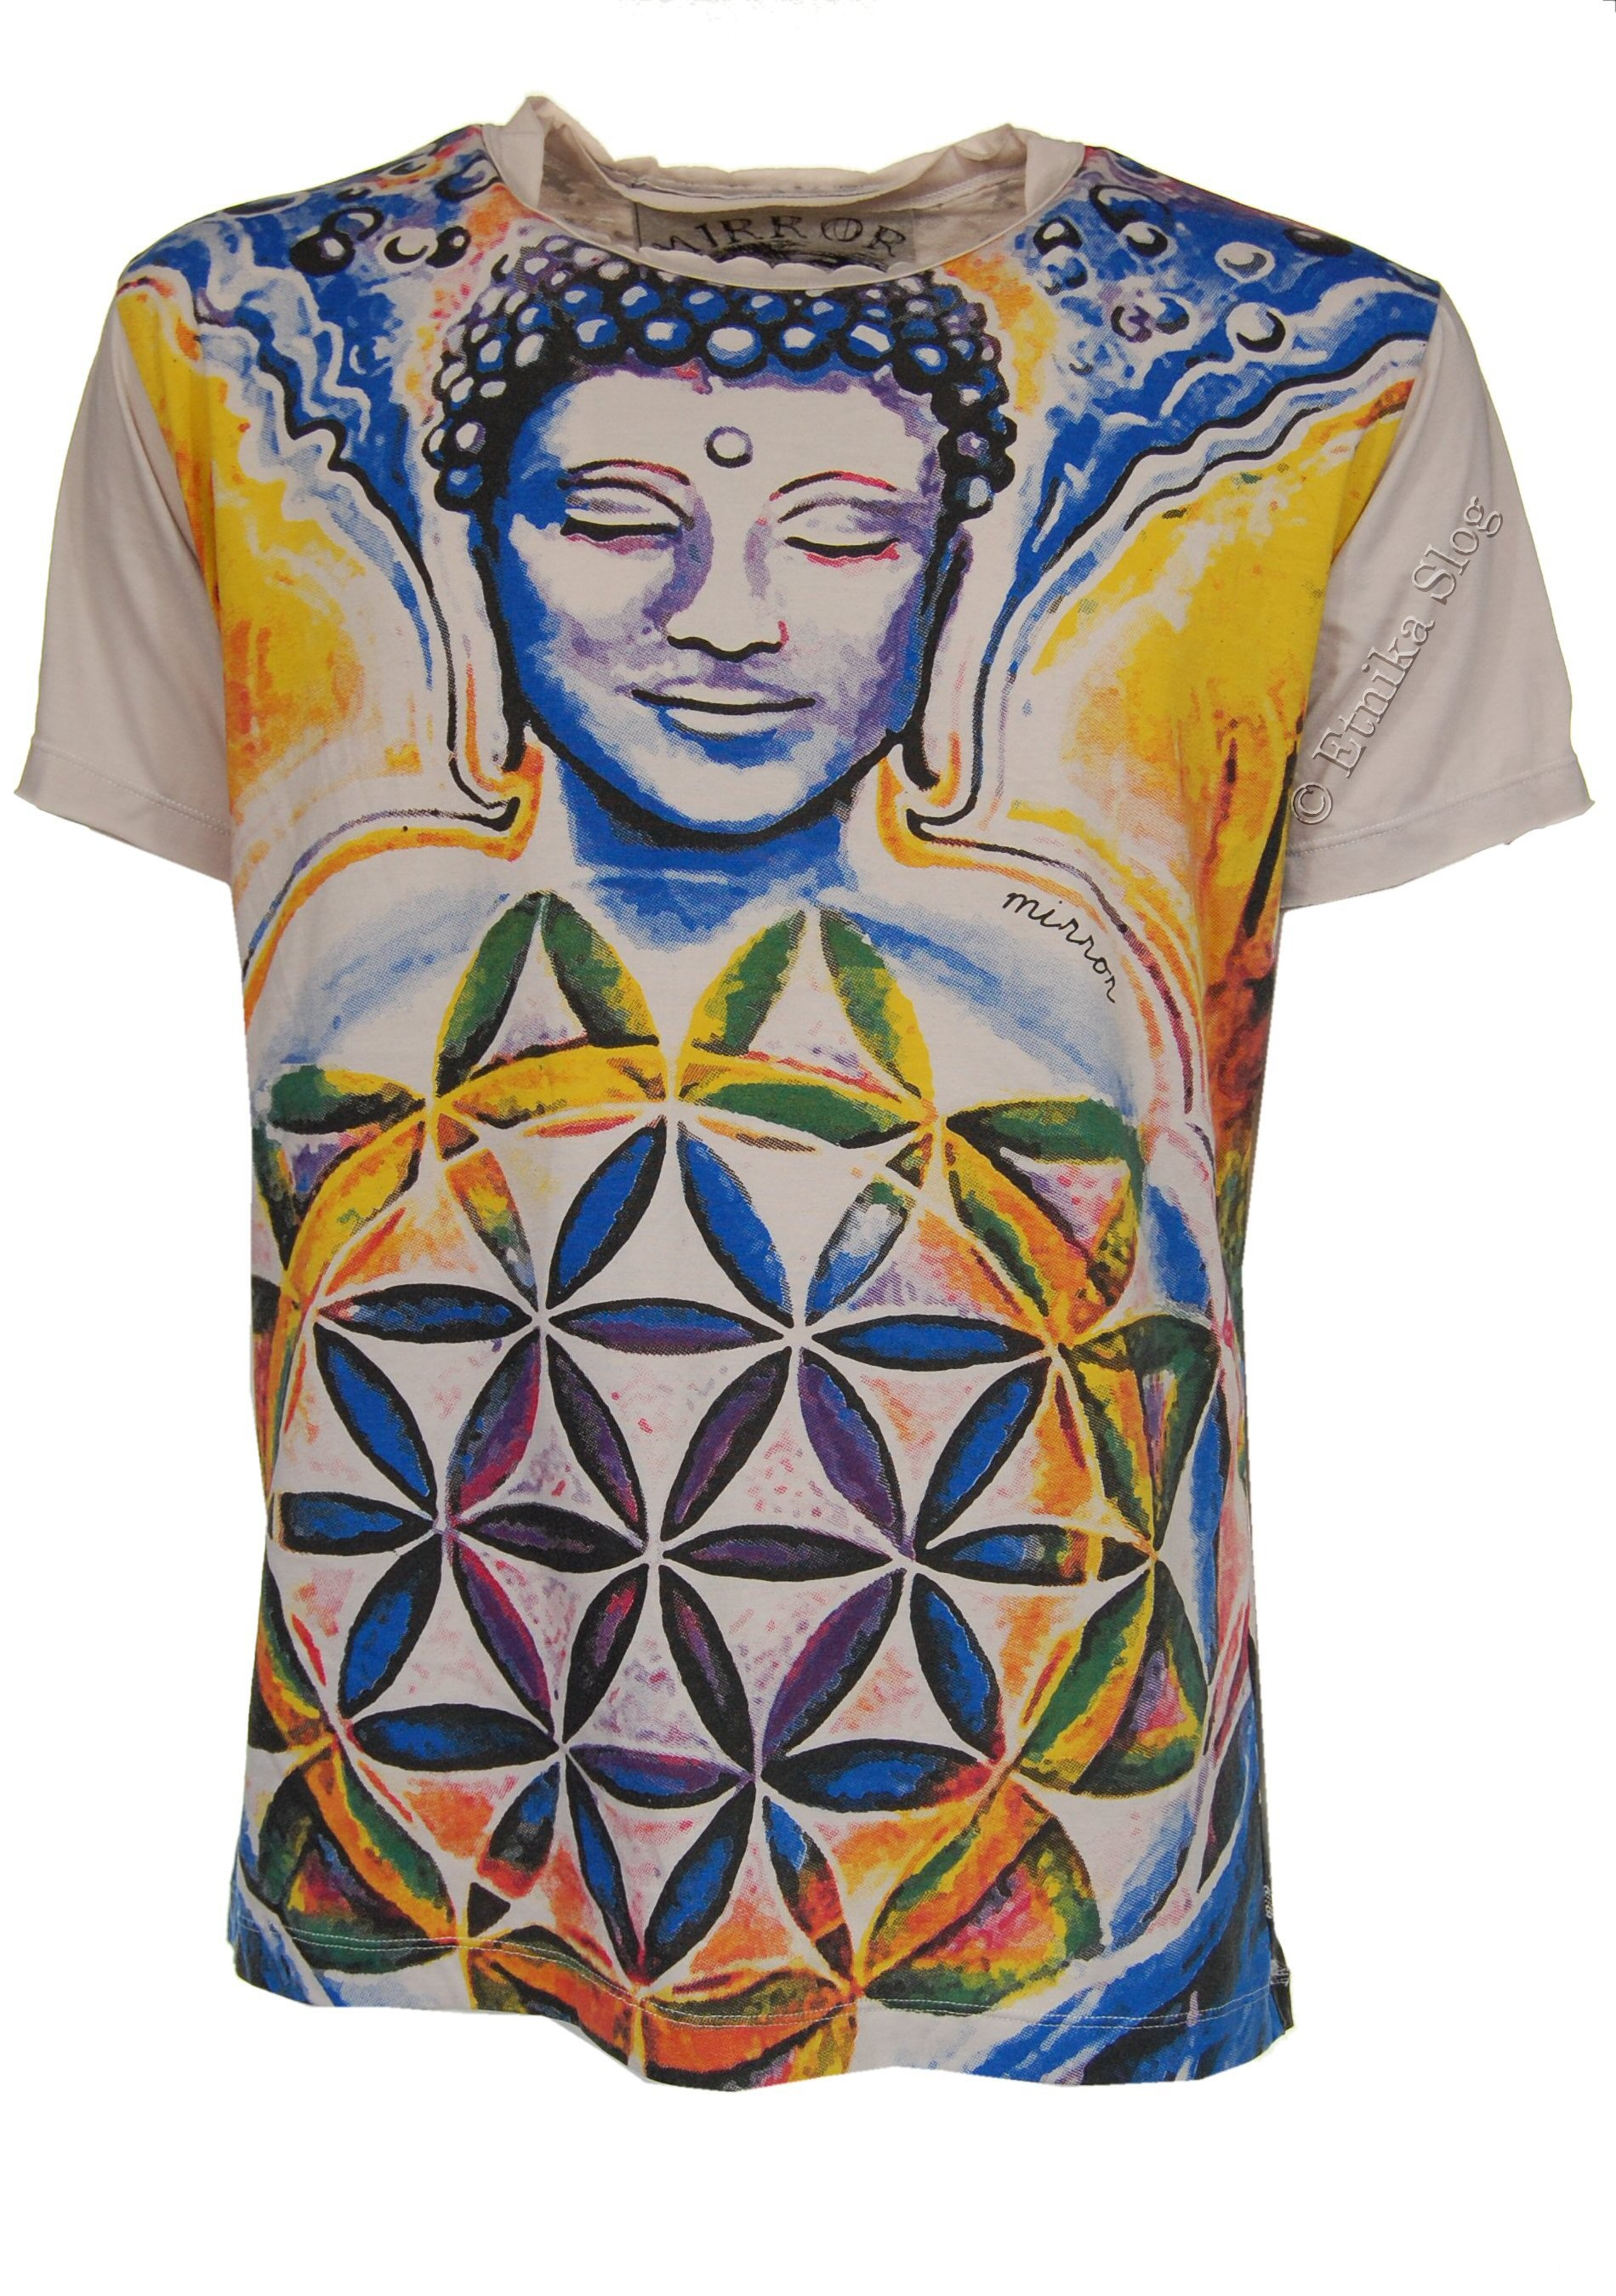 MEN'S COTTON T-SHIRT - MIRROR AB-THM07-37 - Oriente Import S.r.l.